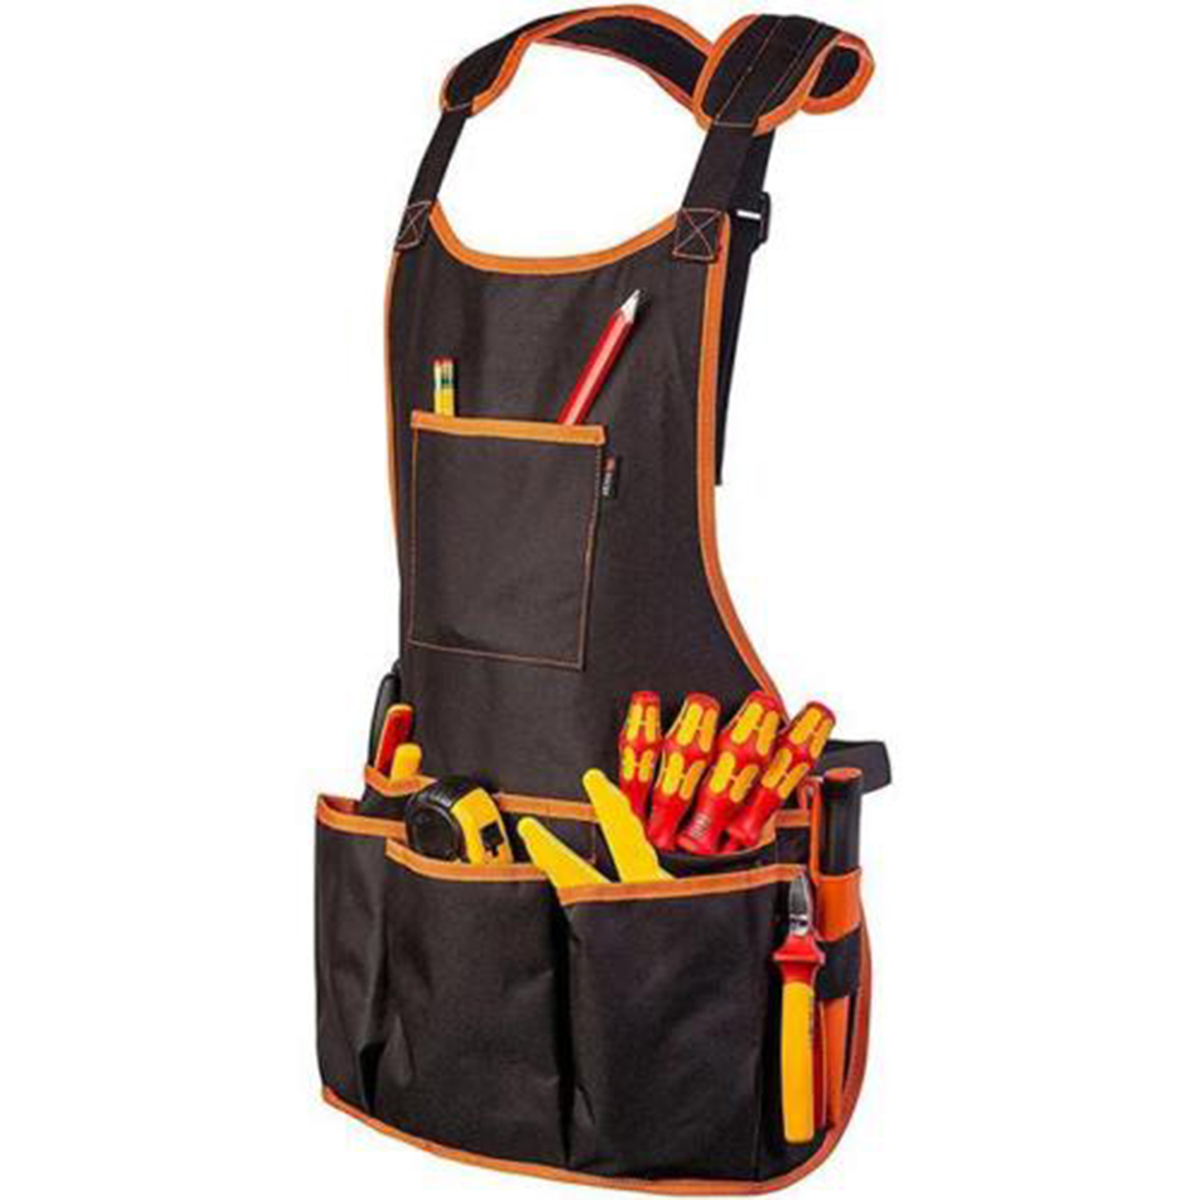 Work Apron Tool 16 Tool Pockets Tool Belt Adjustable Vest Tool Apron for Mans Work Apron and Women Work Apron with Waterproof|Aprons| |  - title=